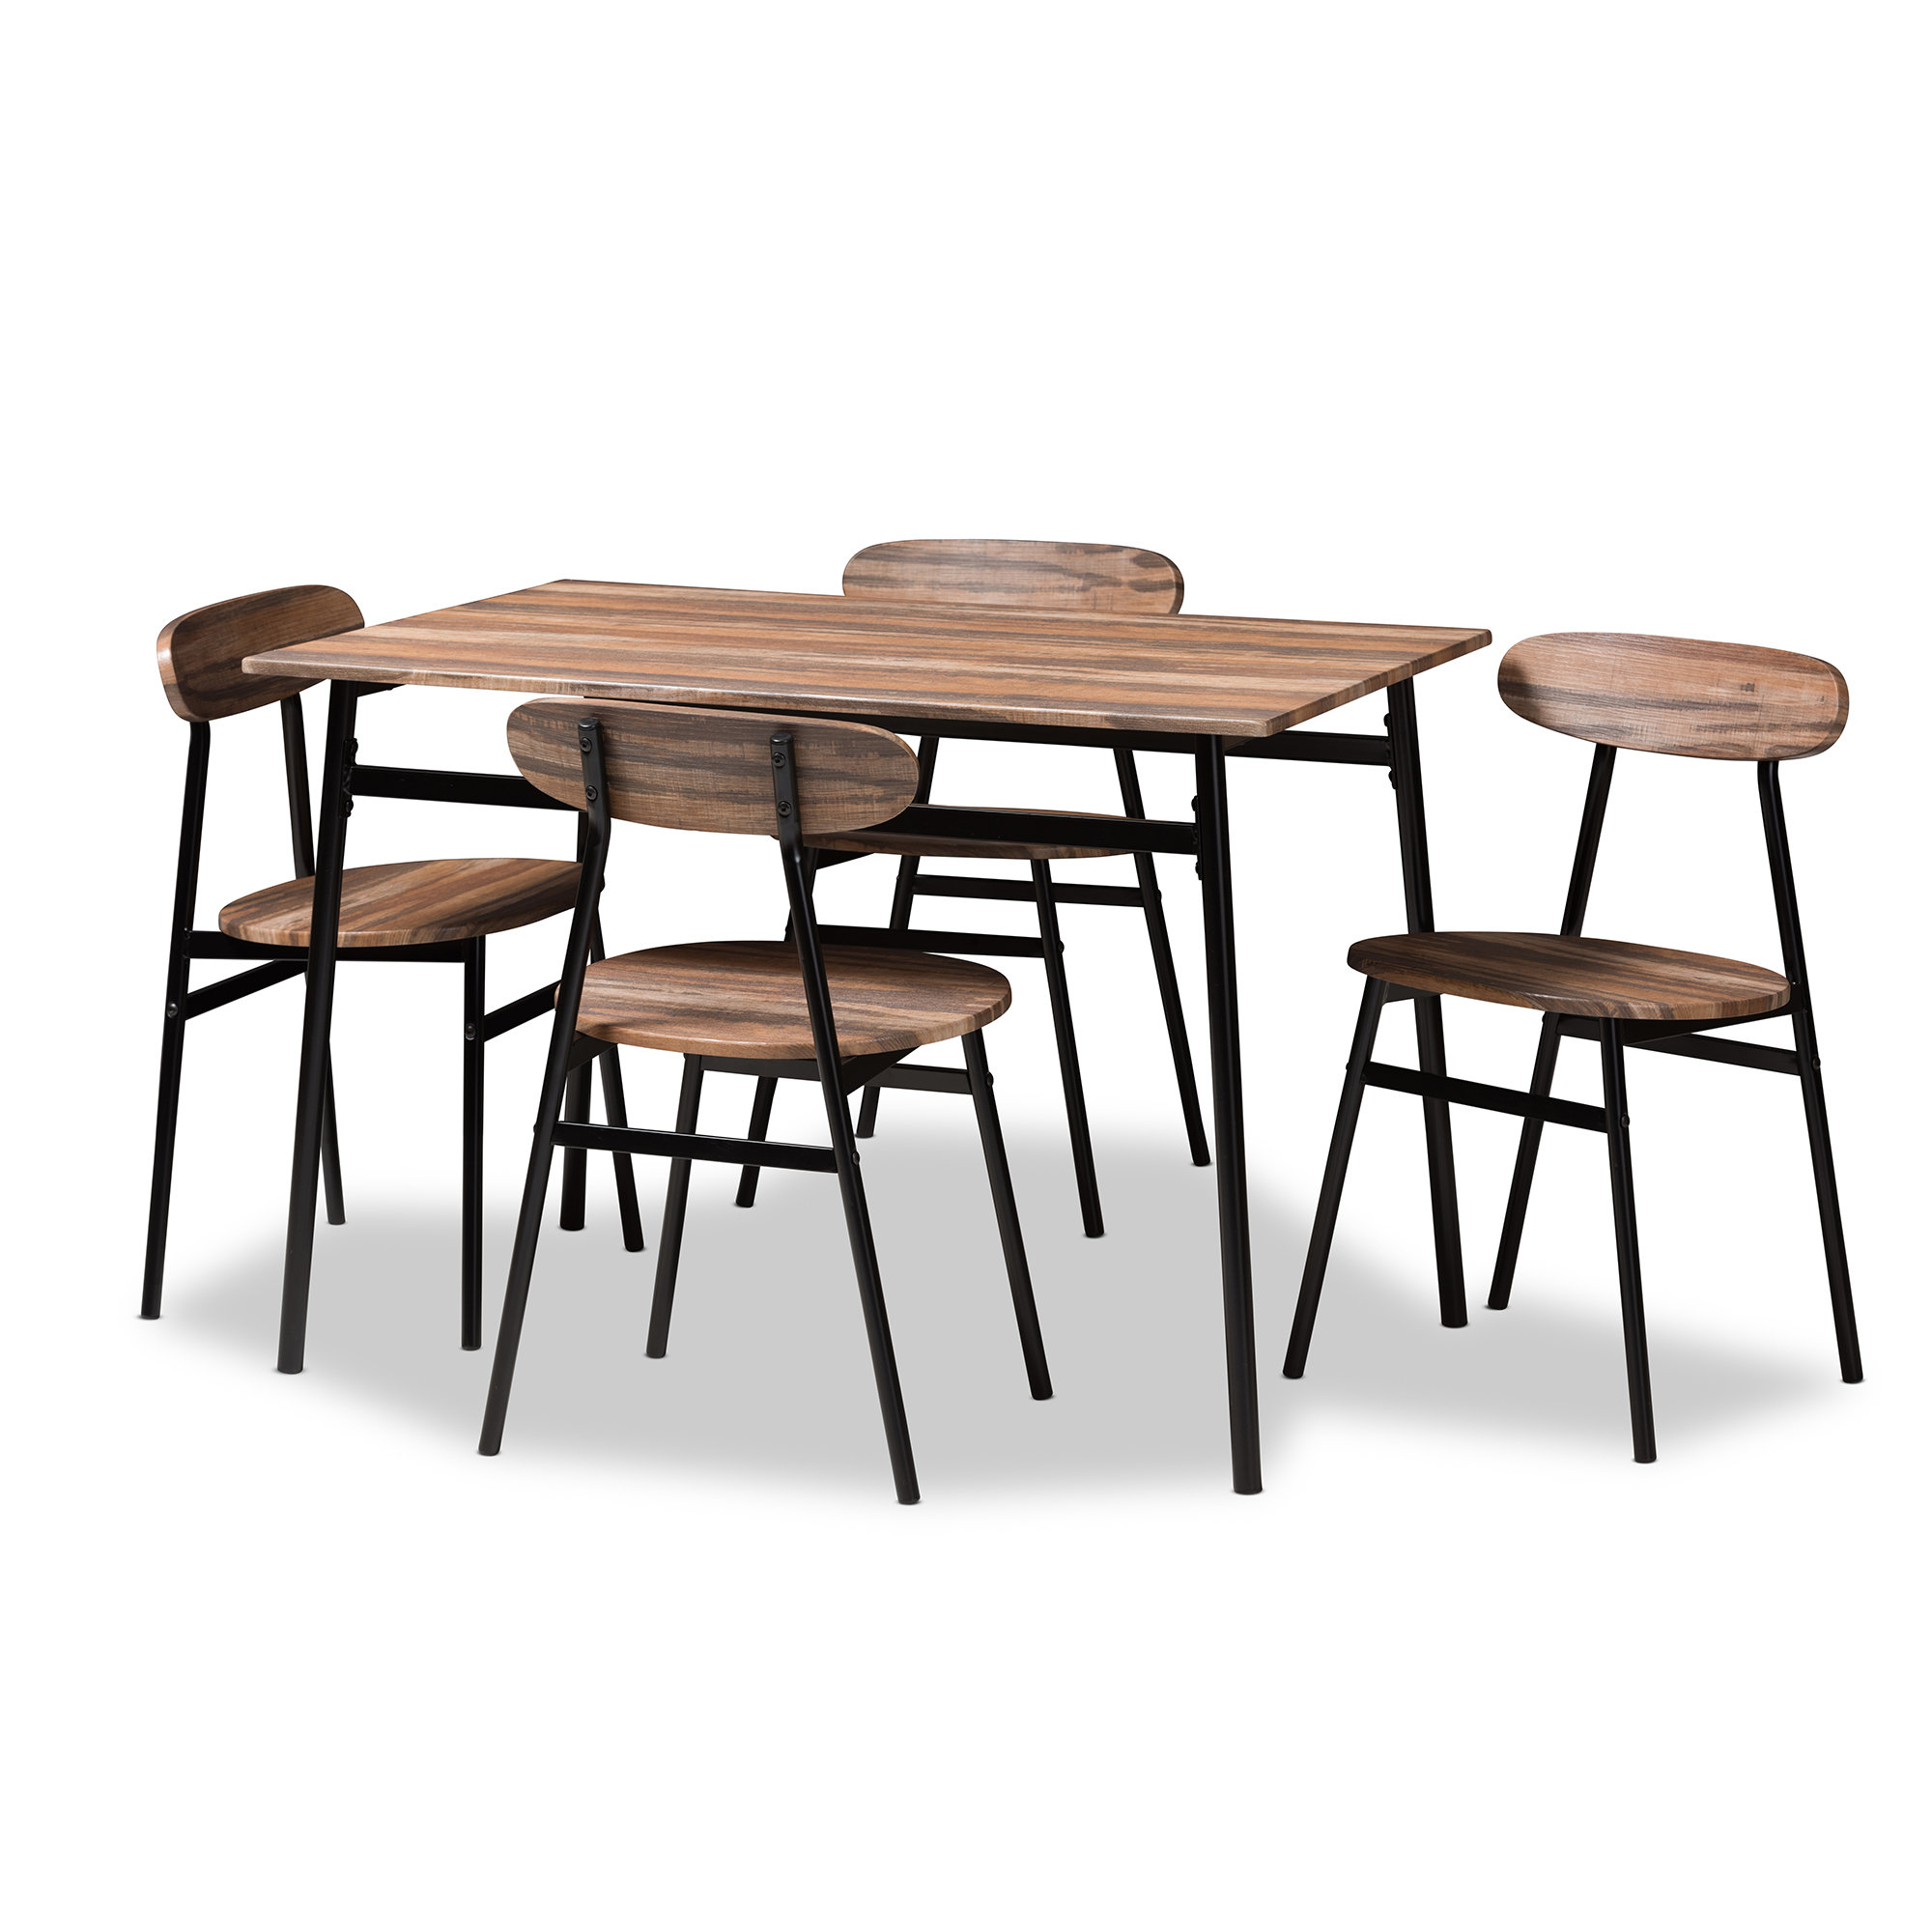 Telauges 5 Piece Dining Set Intended For Most Recently Released Kaelin 5 Piece Dining Sets (View 2 of 20)